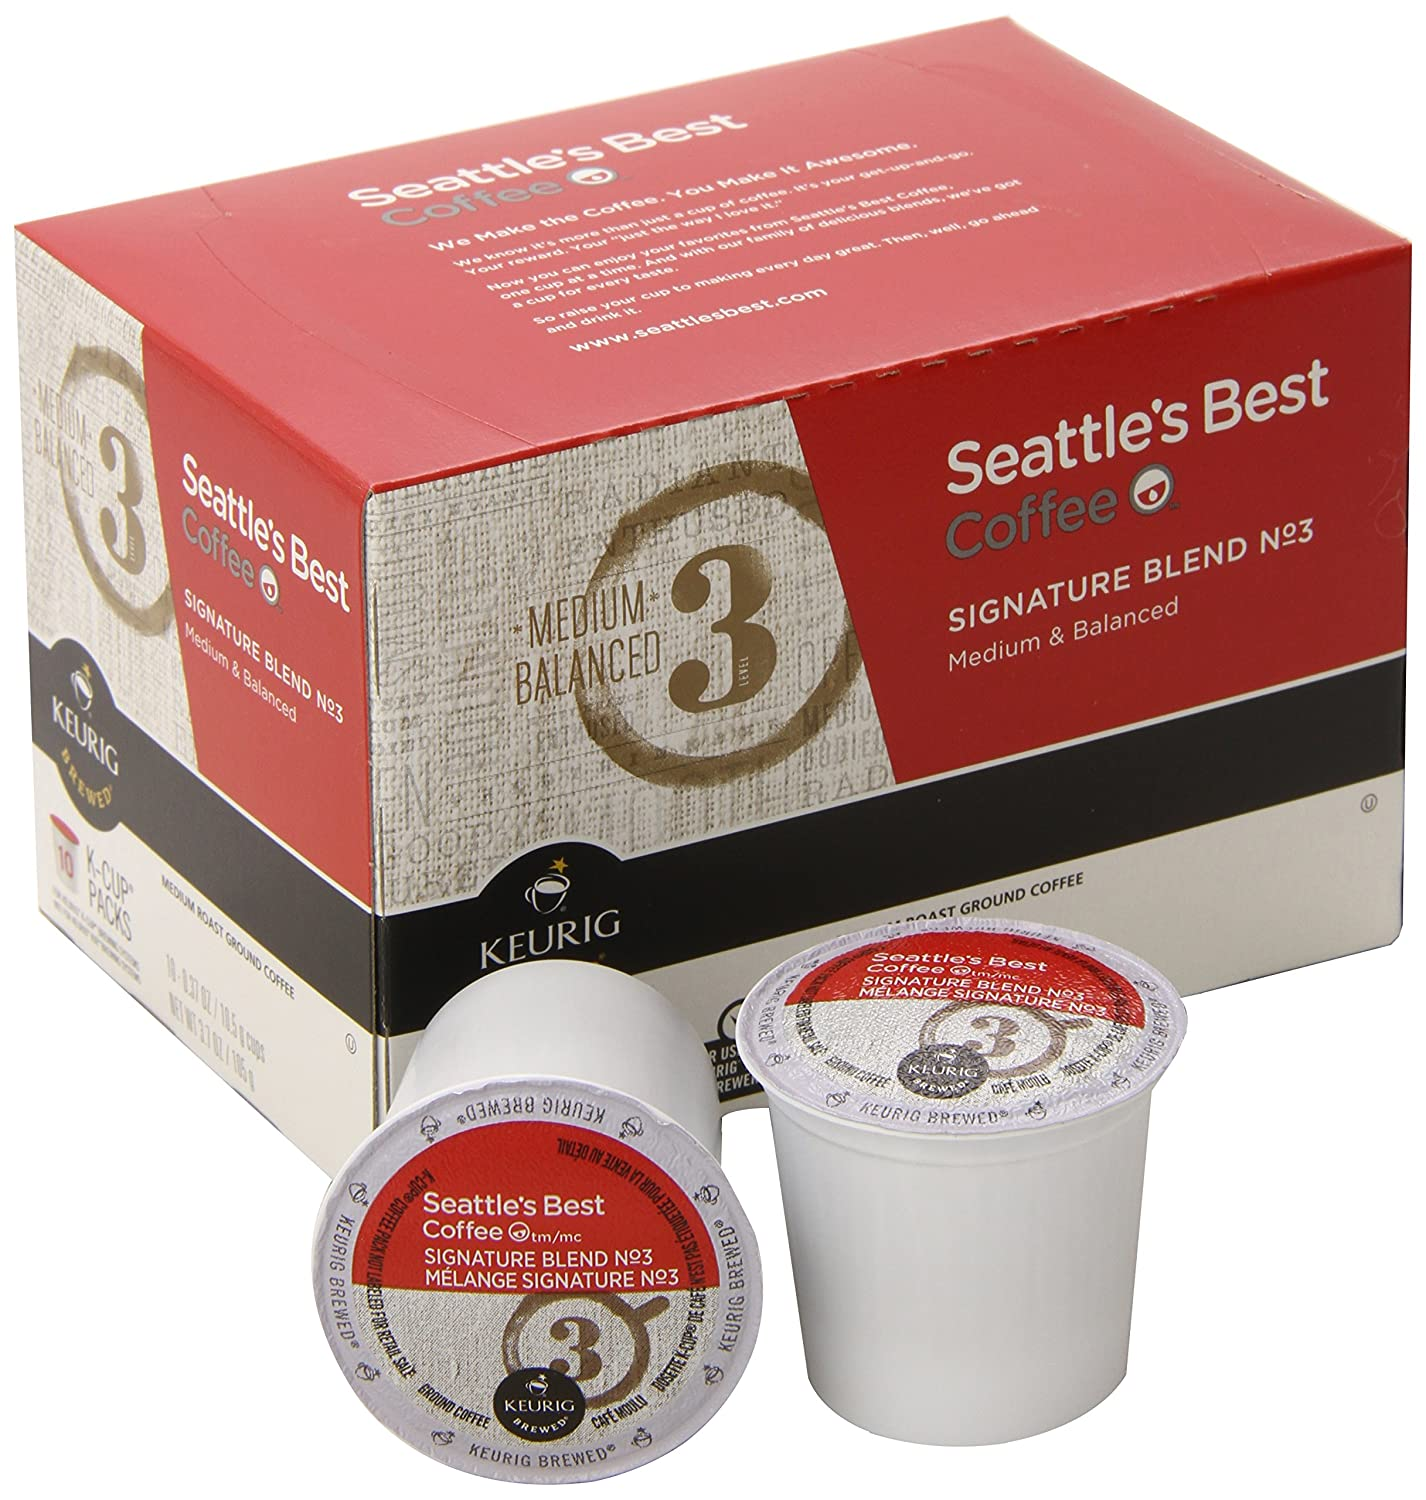 Seattle's Best Coffee K-Cup, Signature Blend No 3, 10 Count (Pack of 6)